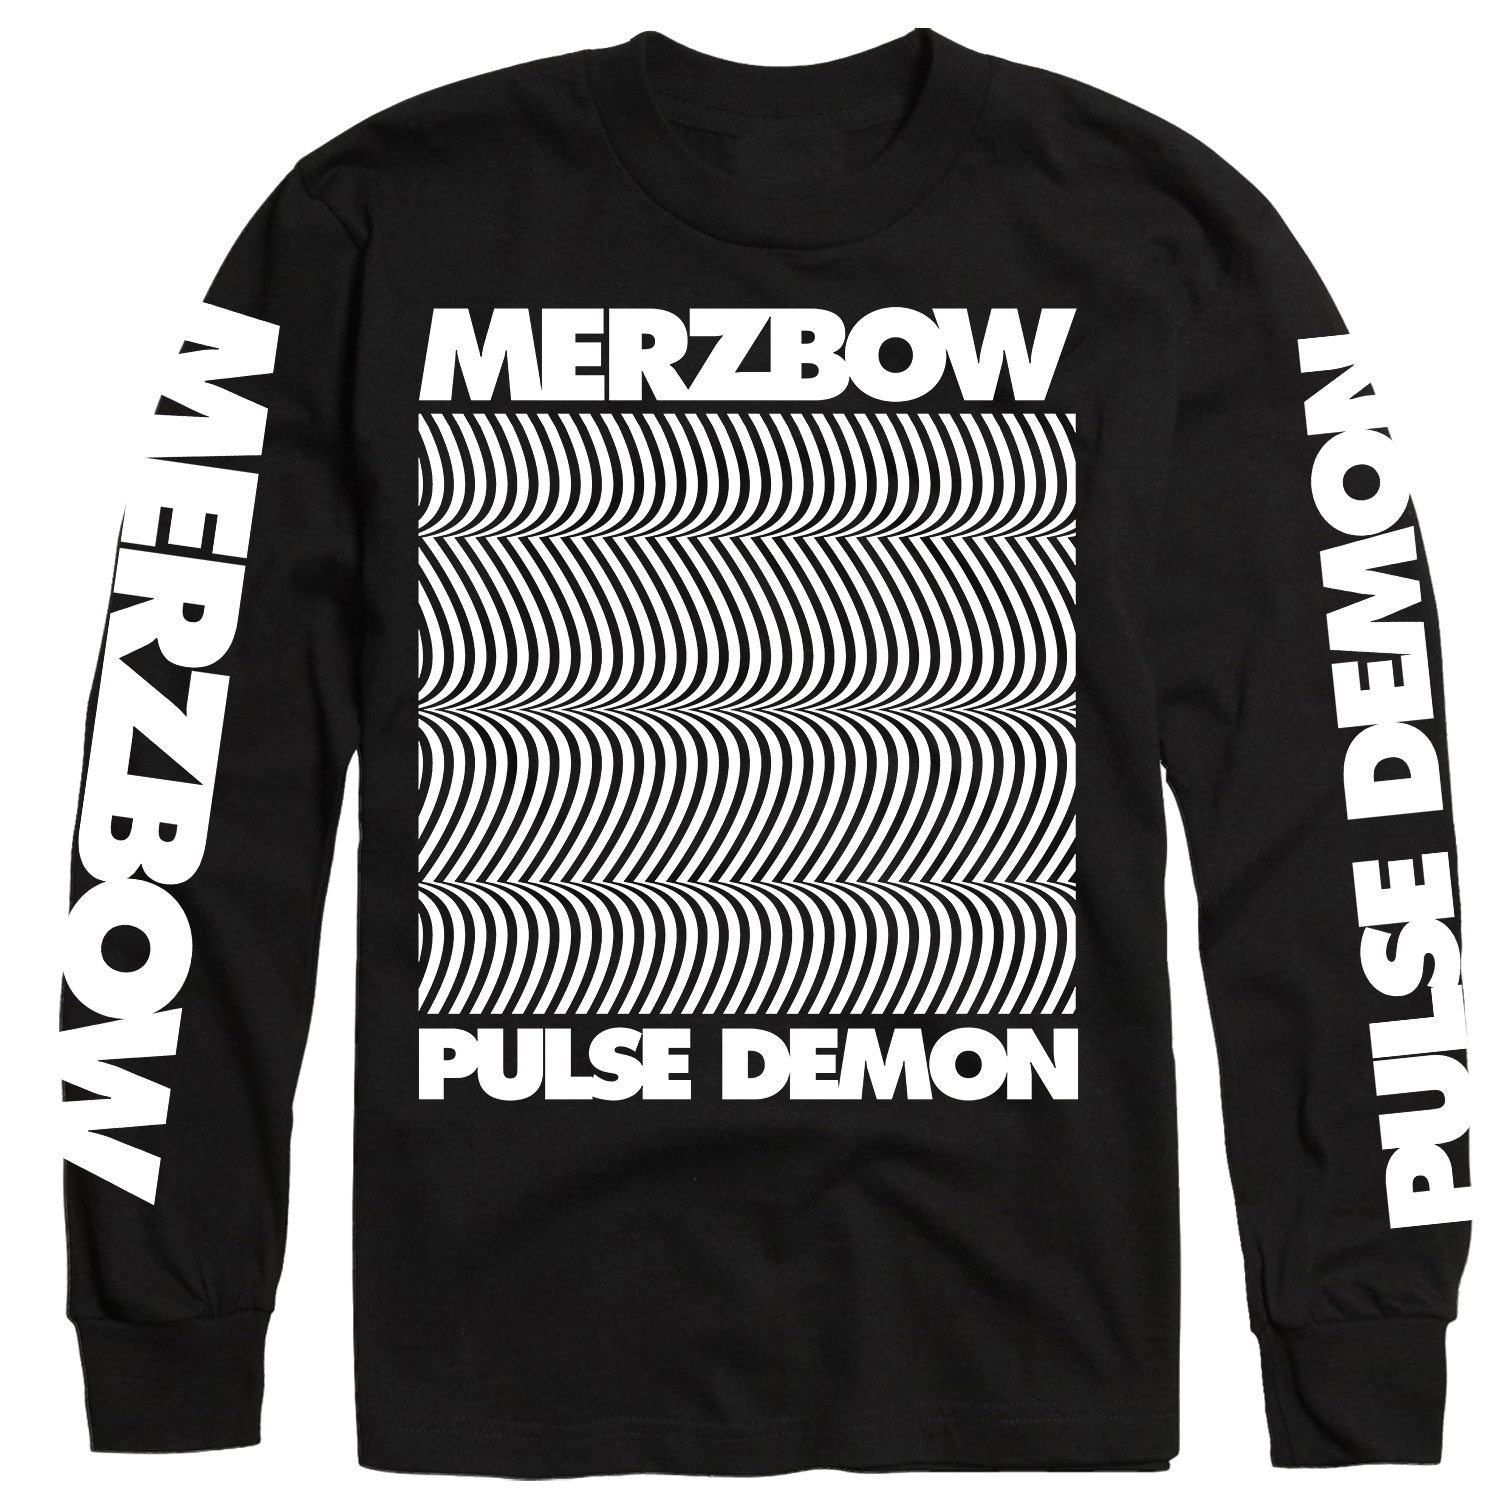 Pulse Demon Longsleeve Shirt + Reissue 2LP Bundle